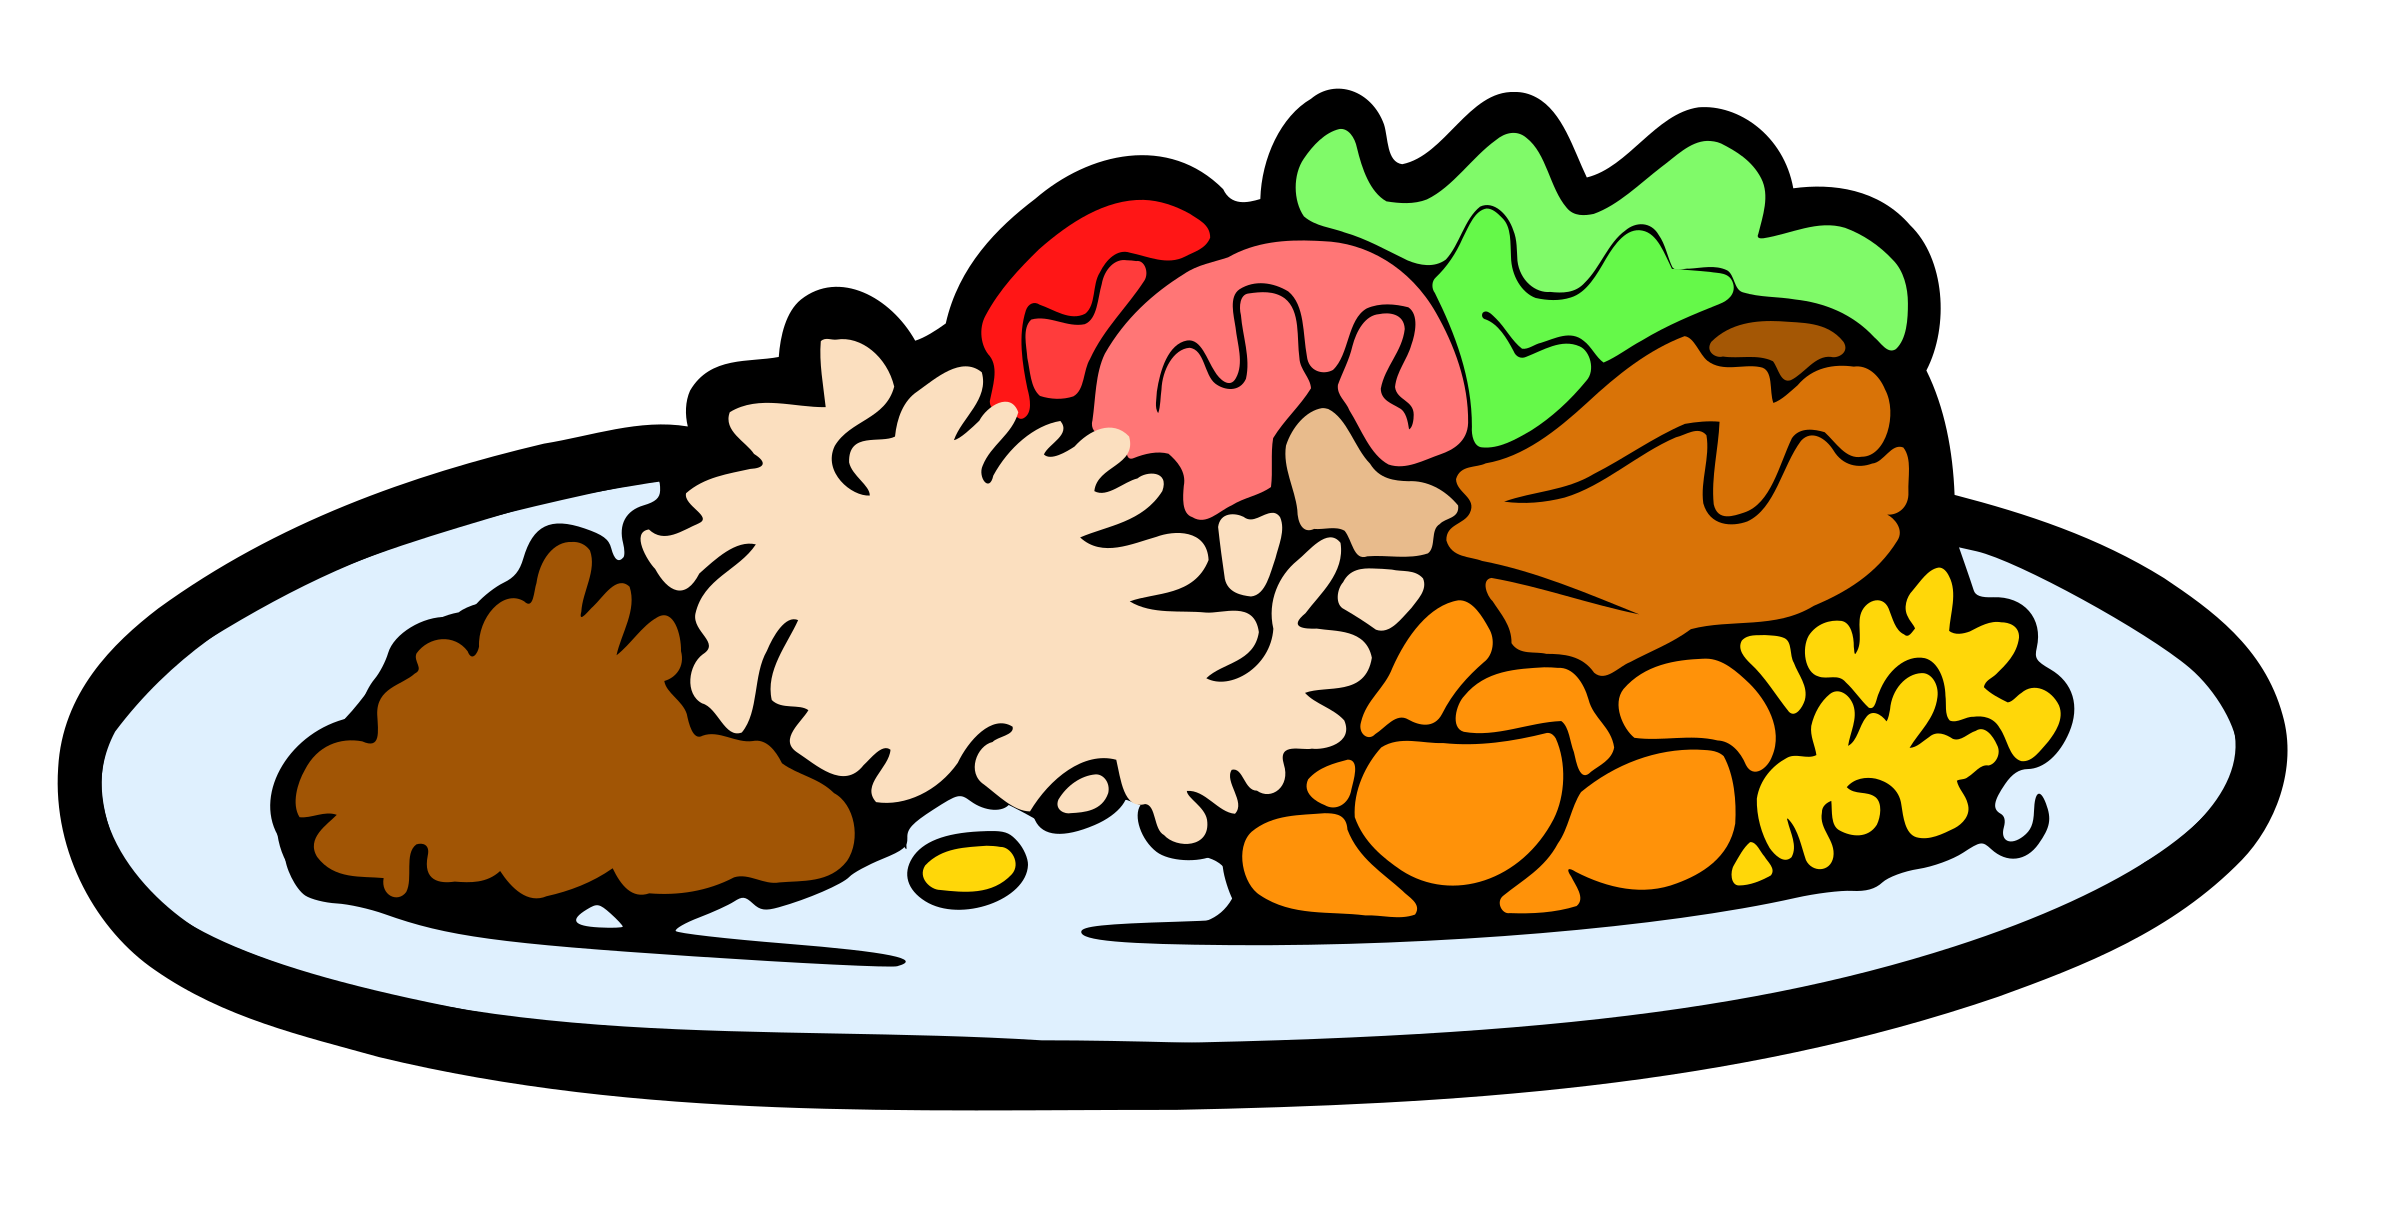 plate of food dinner clipart